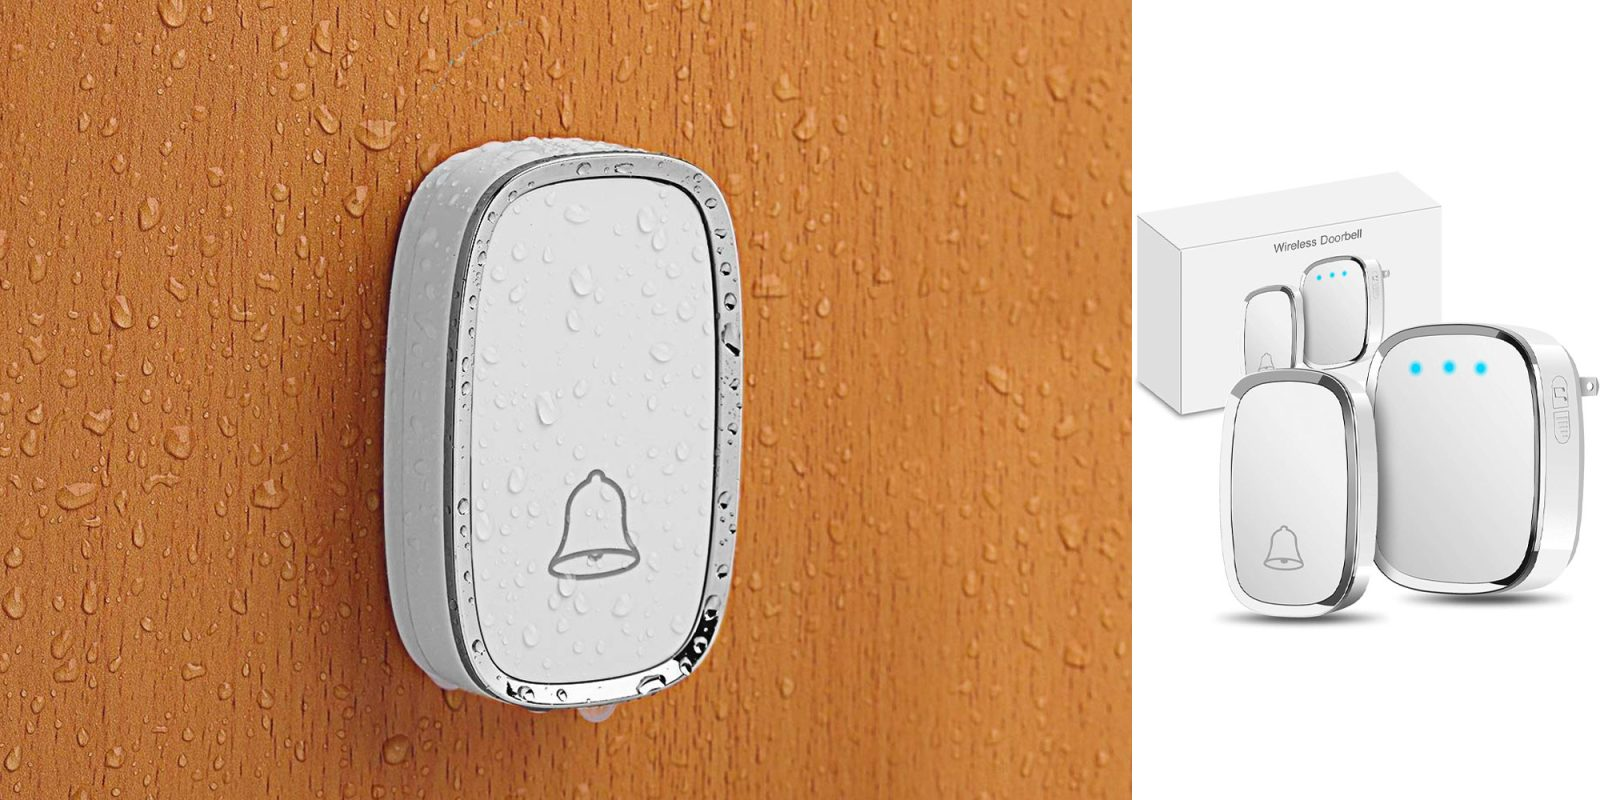 Govee's highly-rated wireless doorbell has a 1,000 foot range for just $8